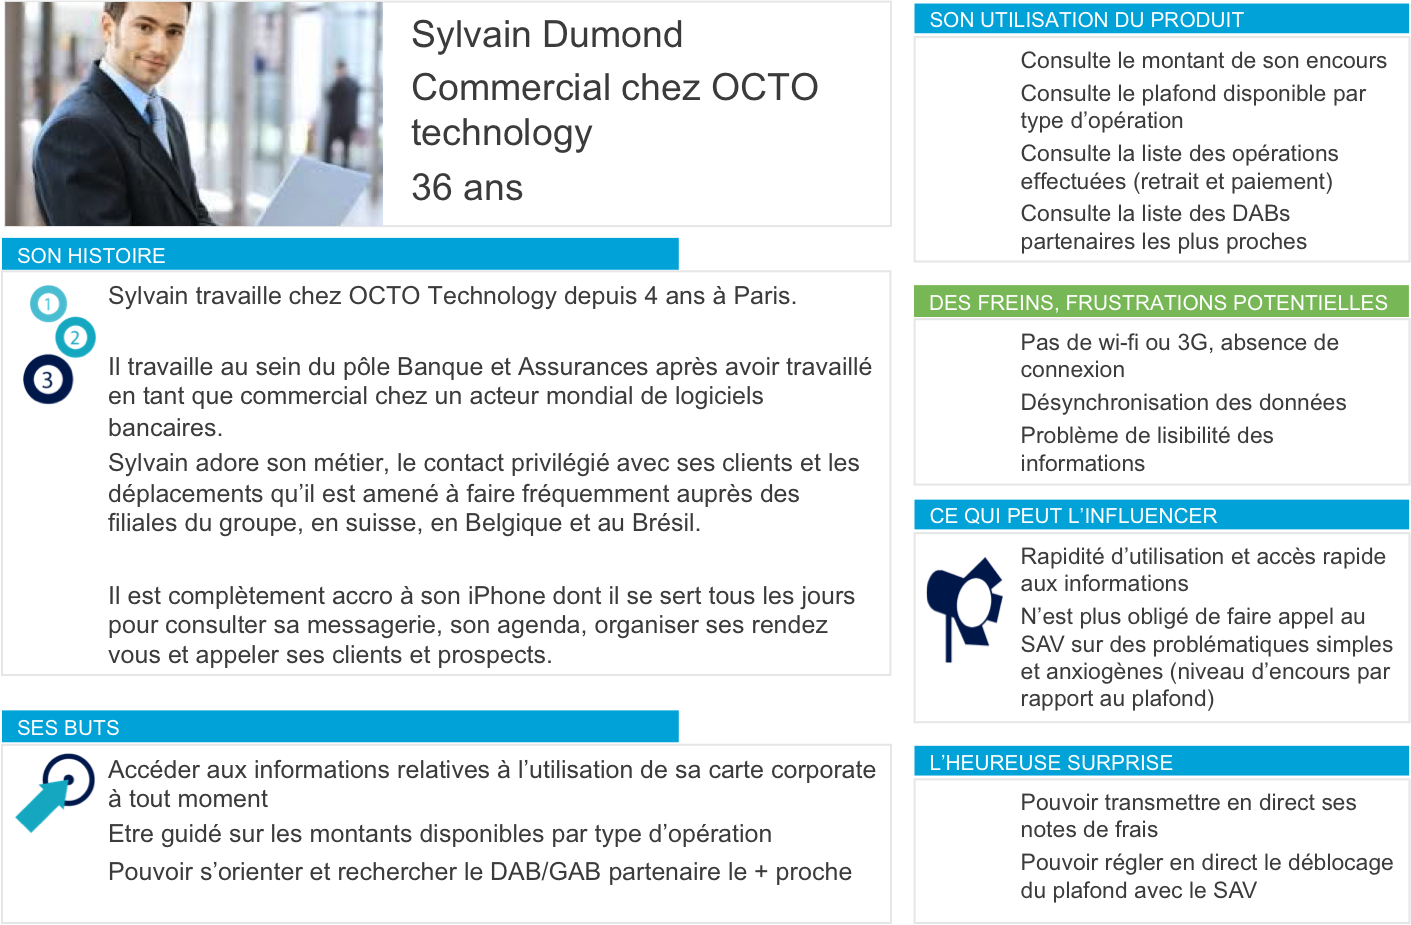 http://blog.octo.com/wp-content/uploads/2013/02/exemple.png | xxx ...